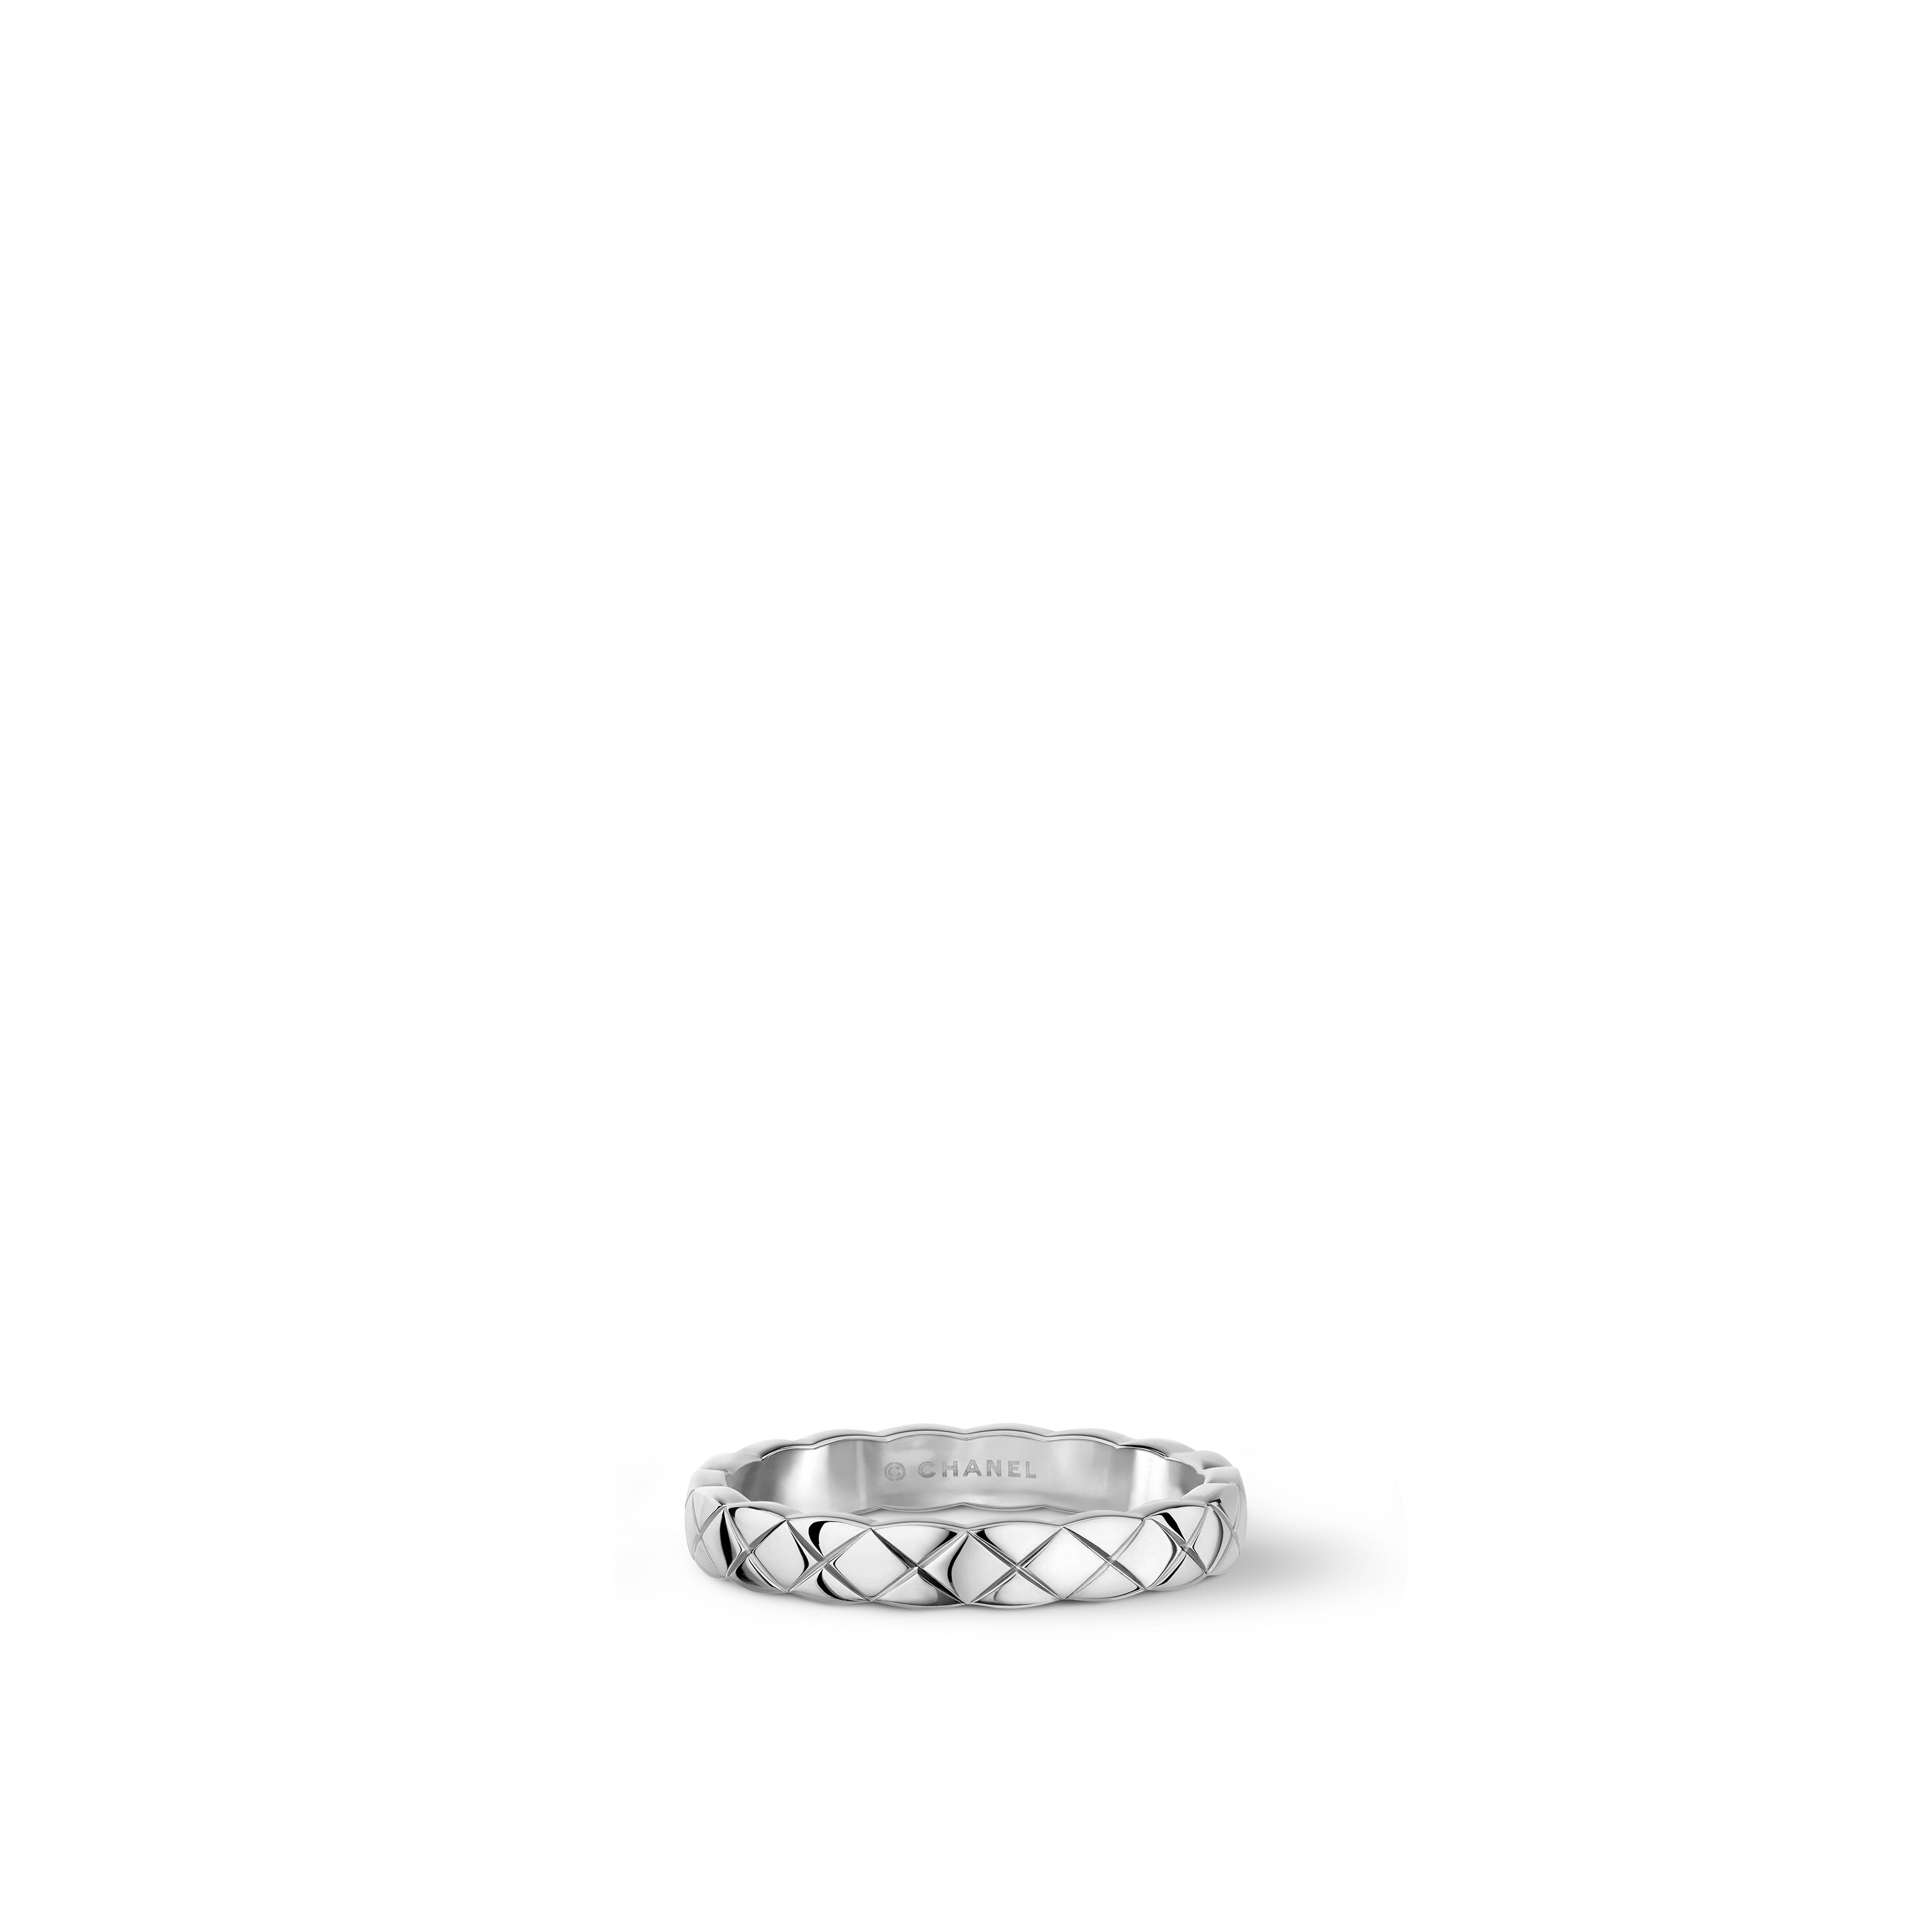 Coco Crush ring - Quilted motif, 18K white gold, Mini version. - CHANEL - Default view - see standard sized version